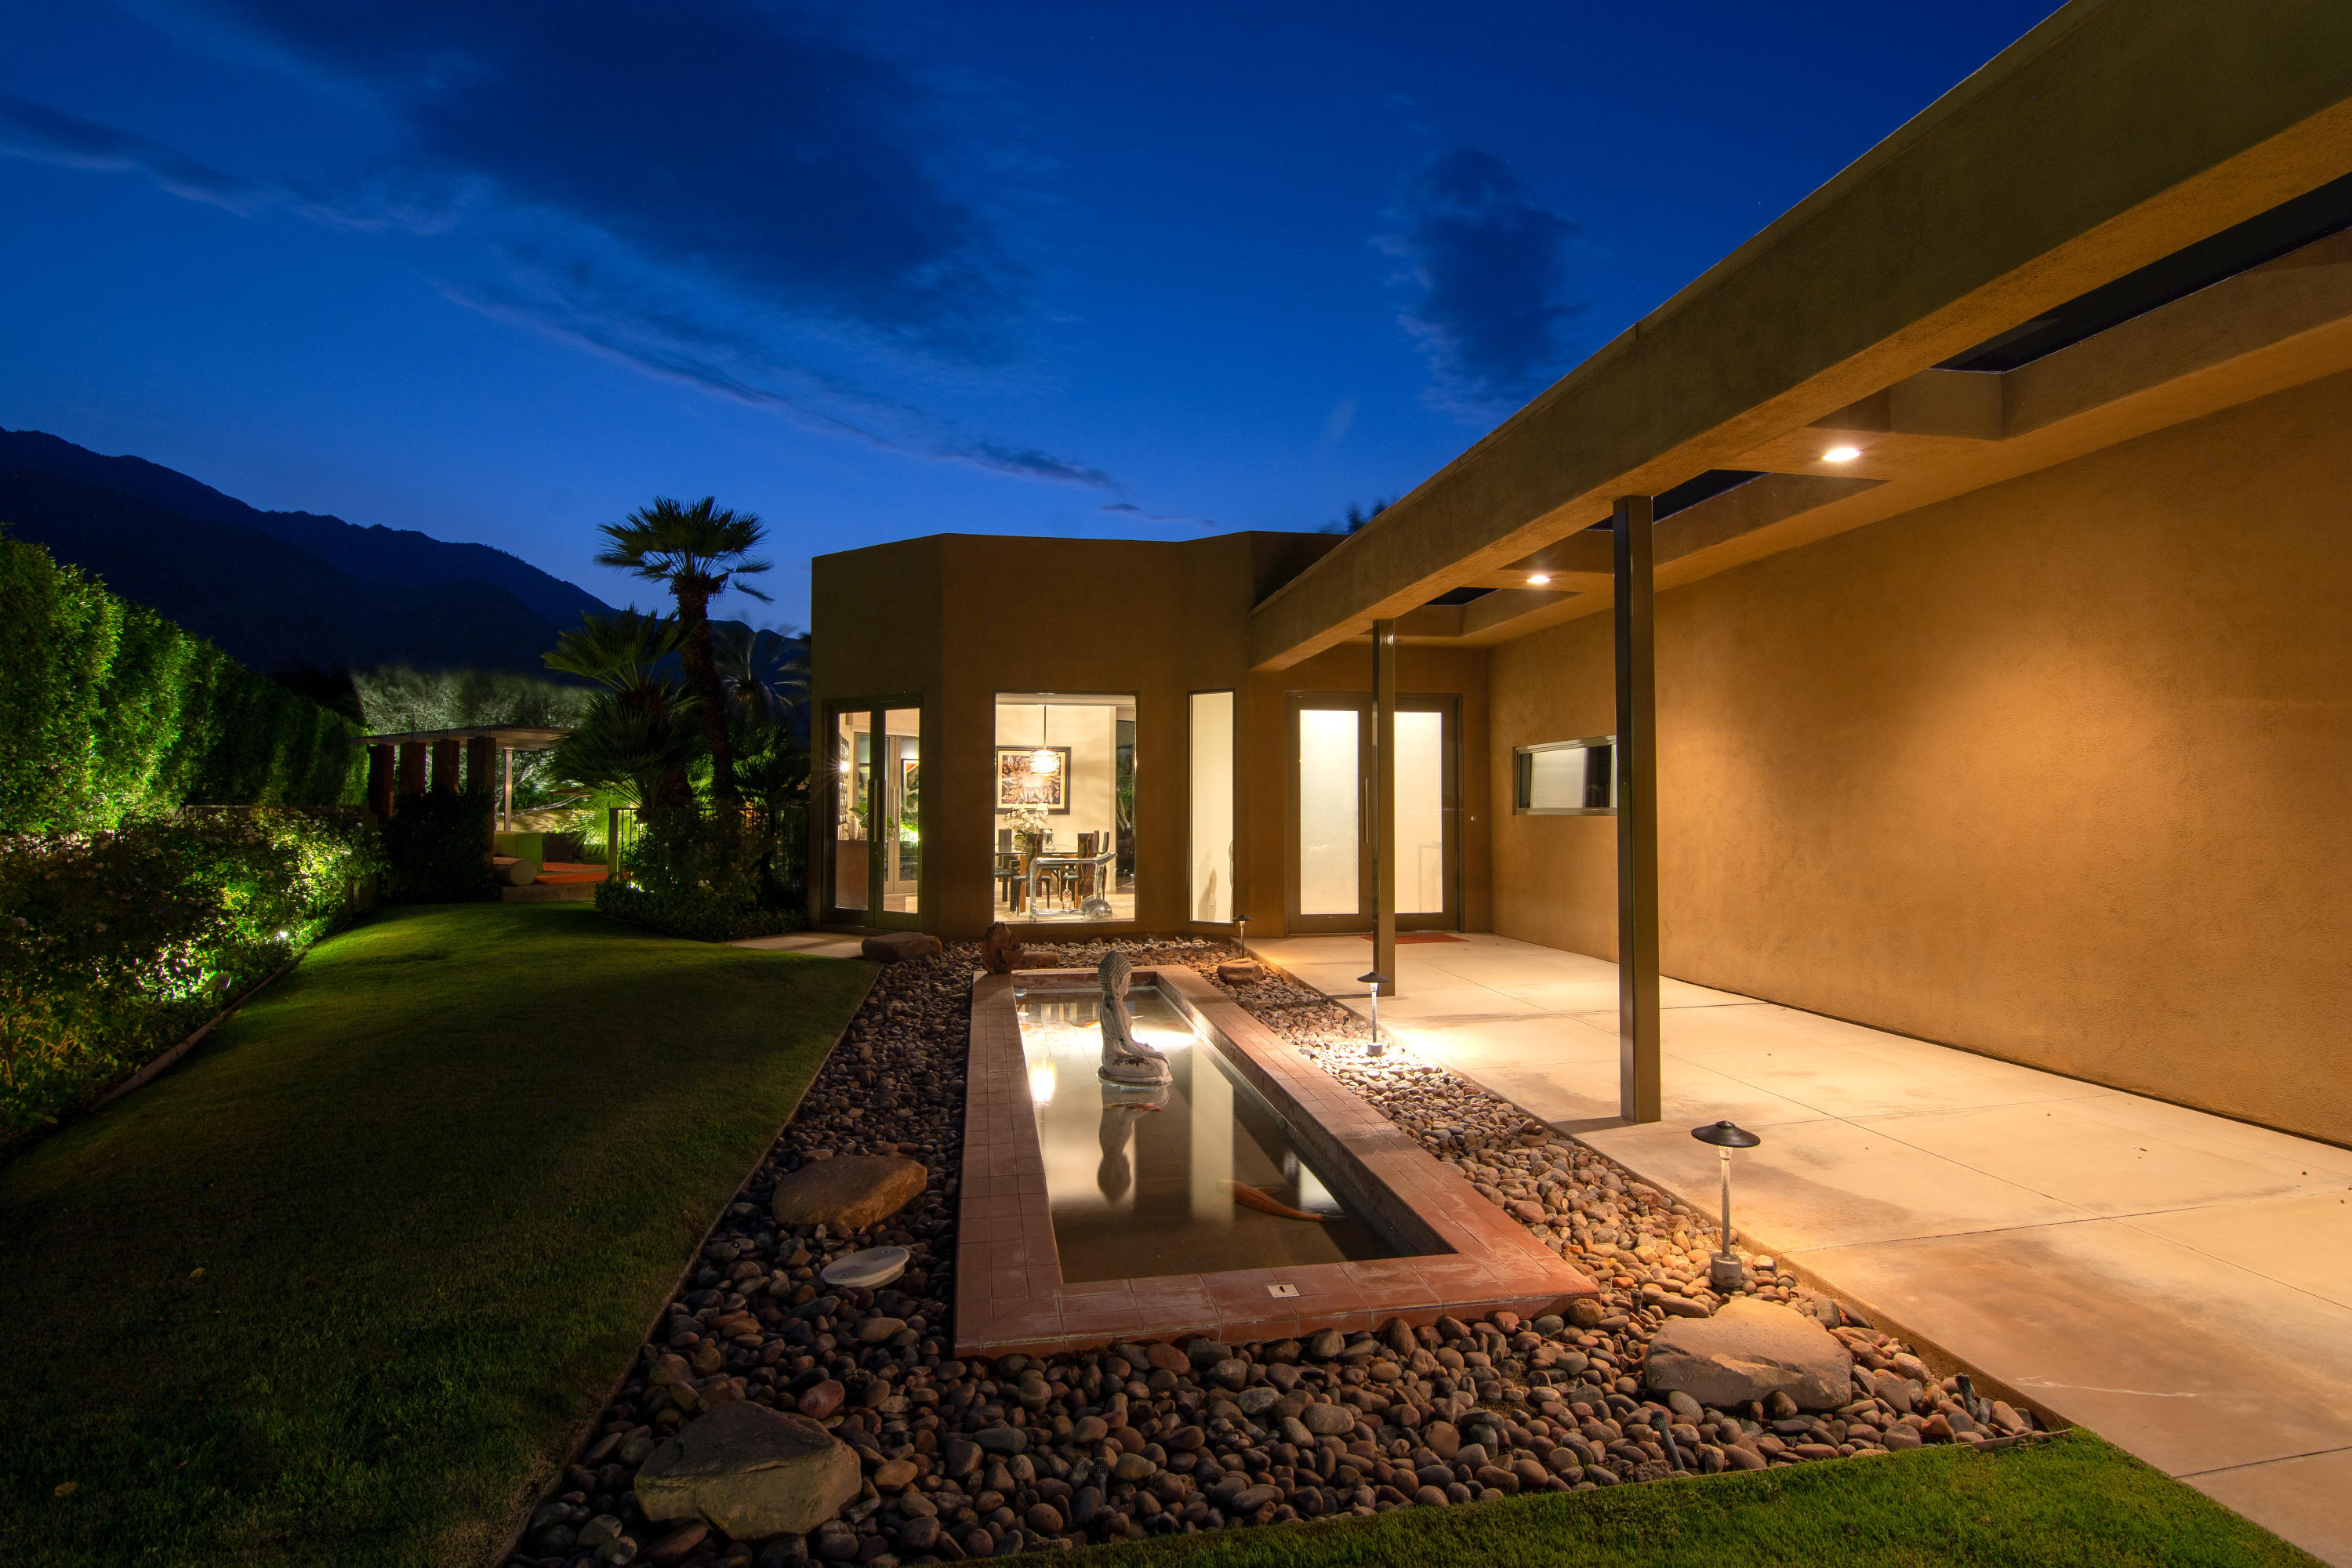 Photo of 1170 E Paseo El Mirador, Palm Springs, CA 92262